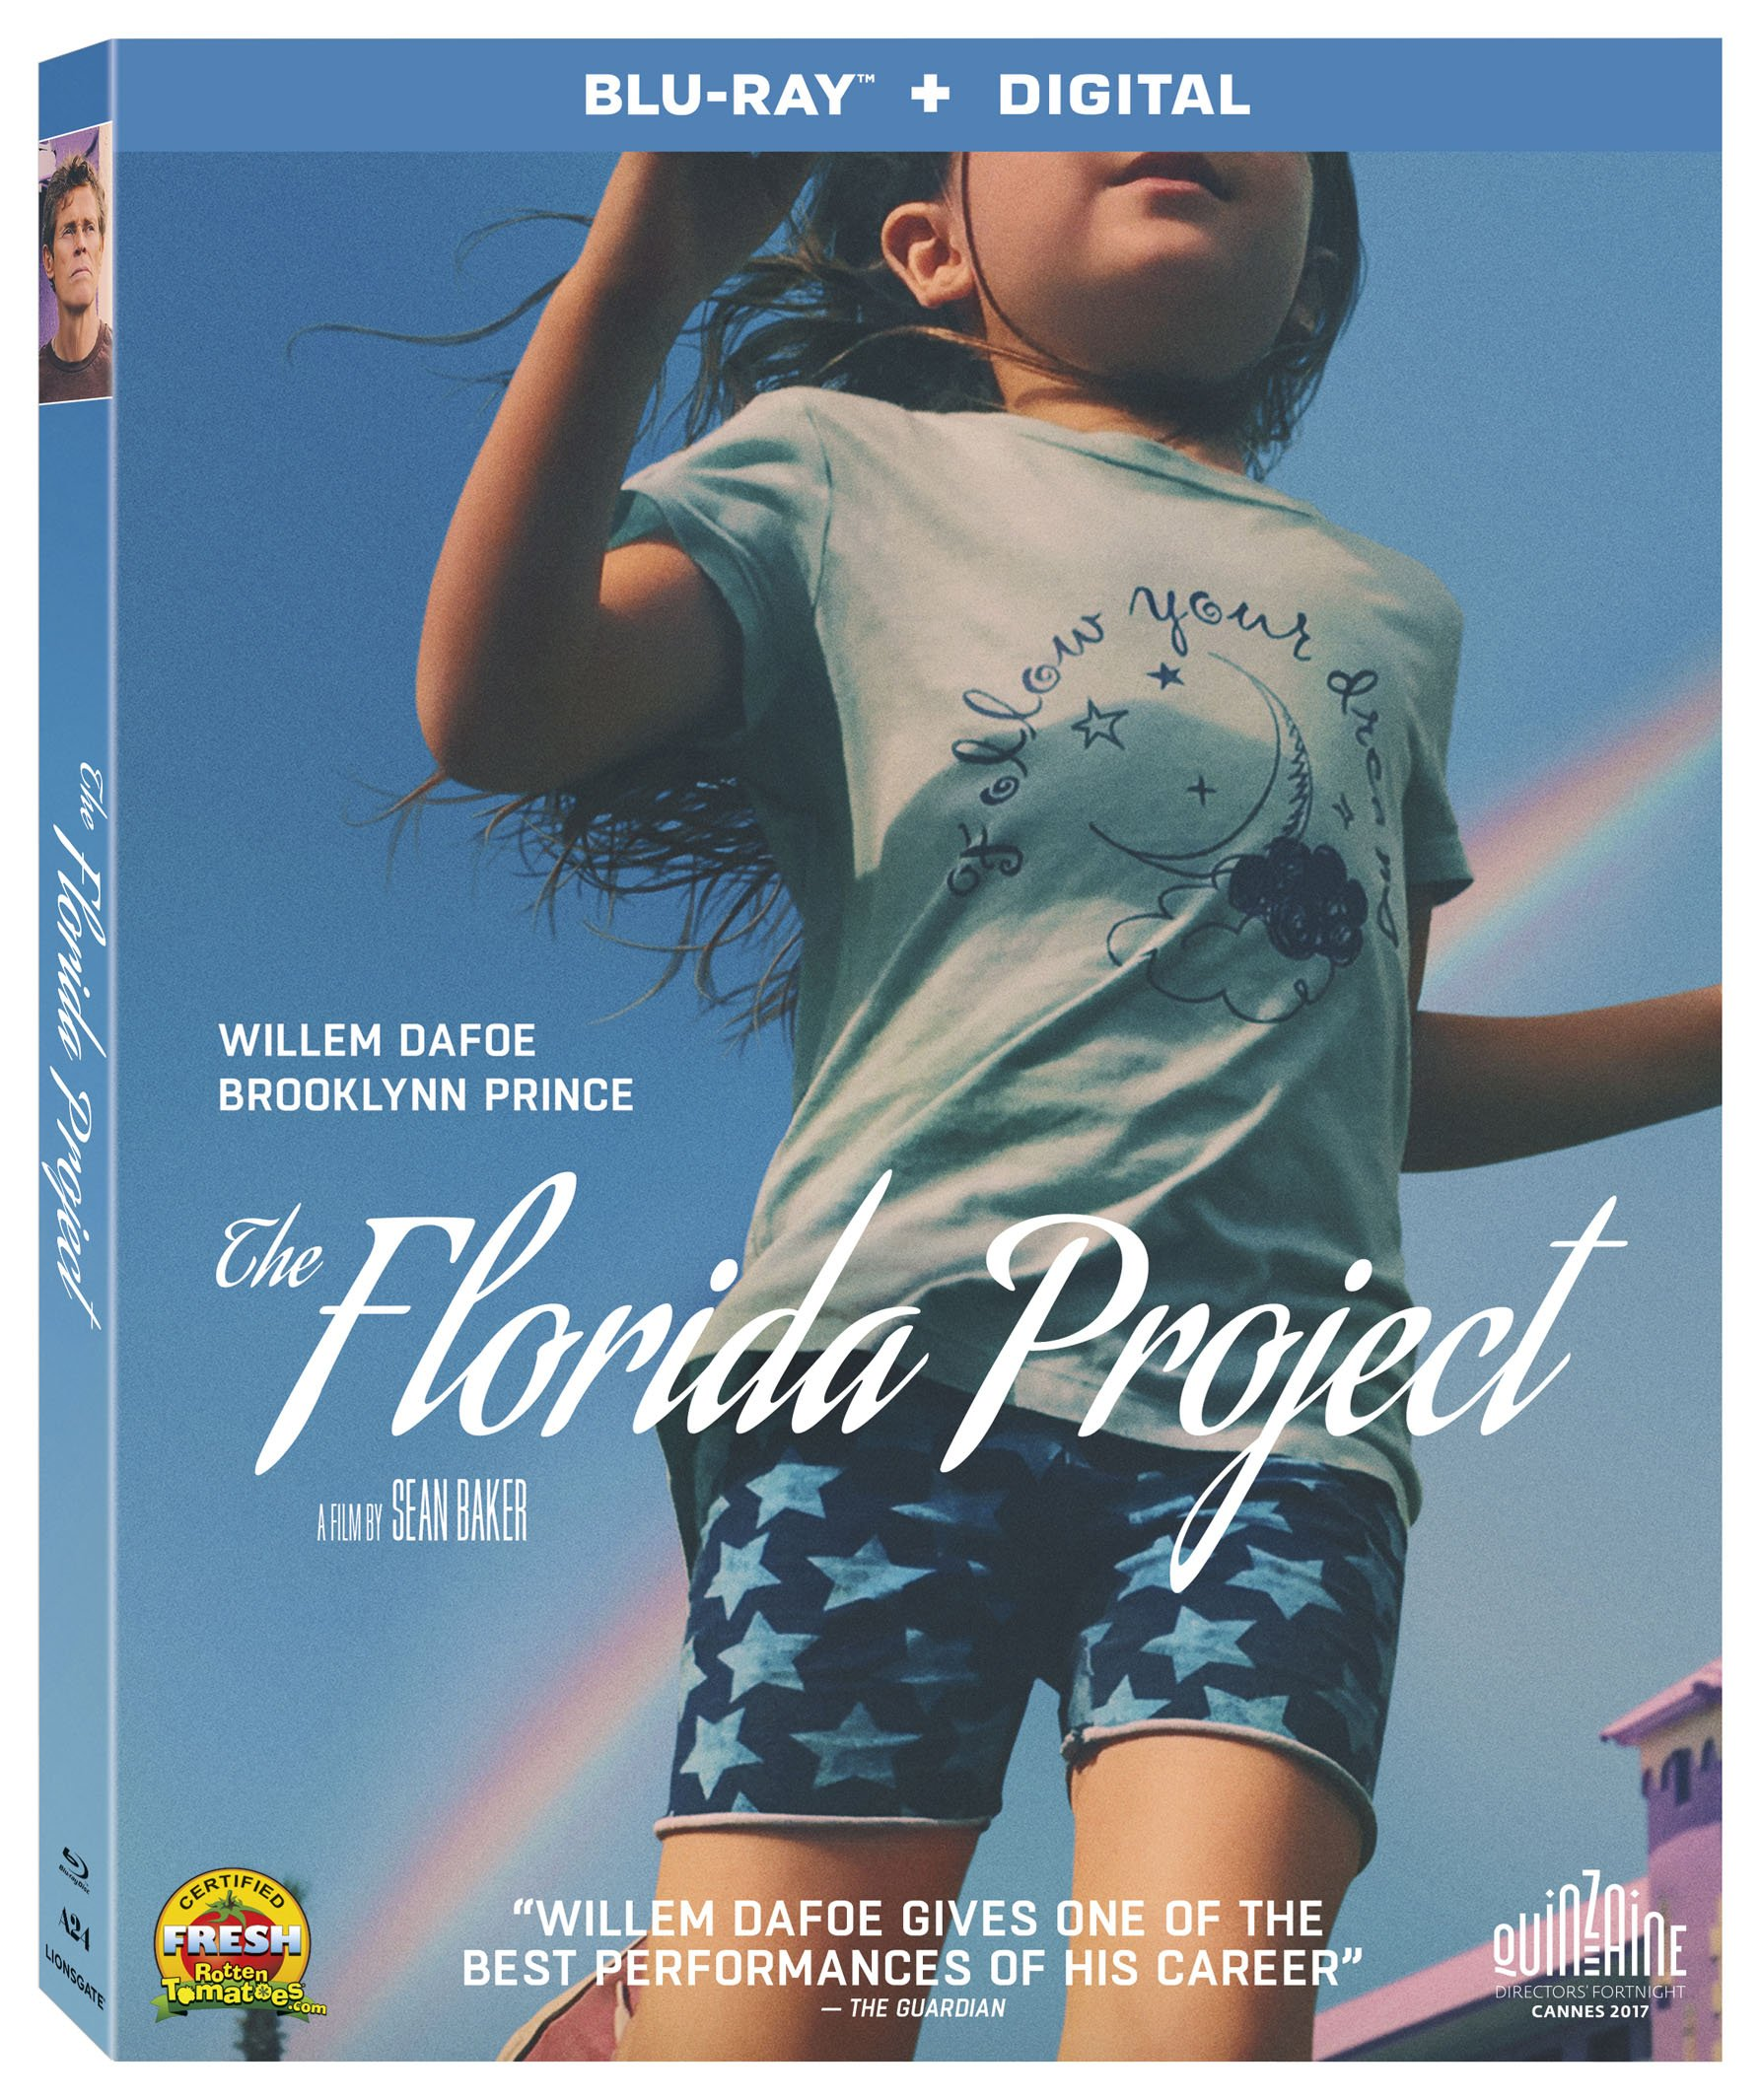 Blu-ray : The Florida Project (Widescreen, Subtitled, AC-3, Digital Theater System)